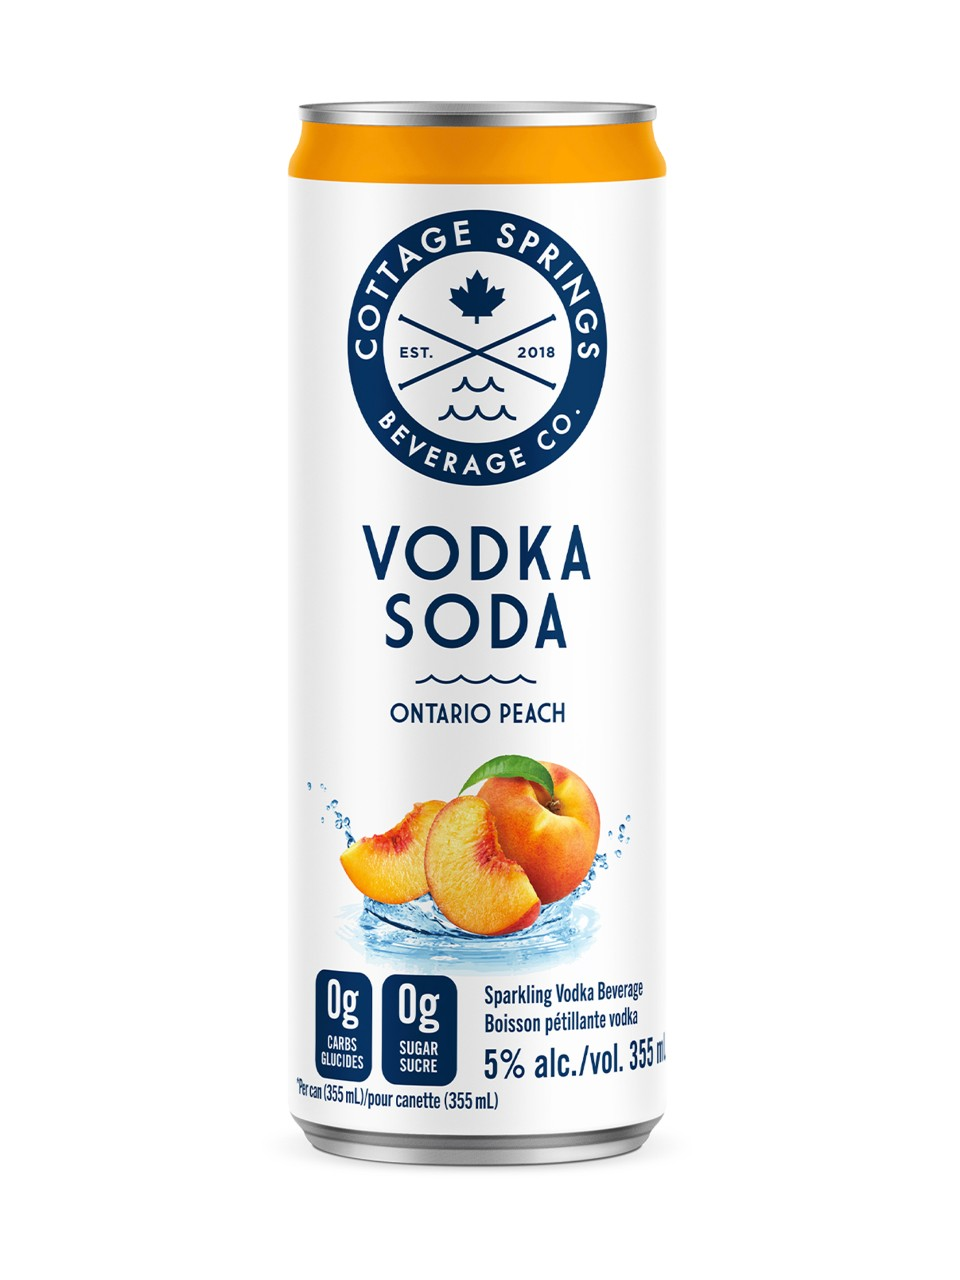 Cottage Springs Ontario Peach Vodka Soda from LCBO